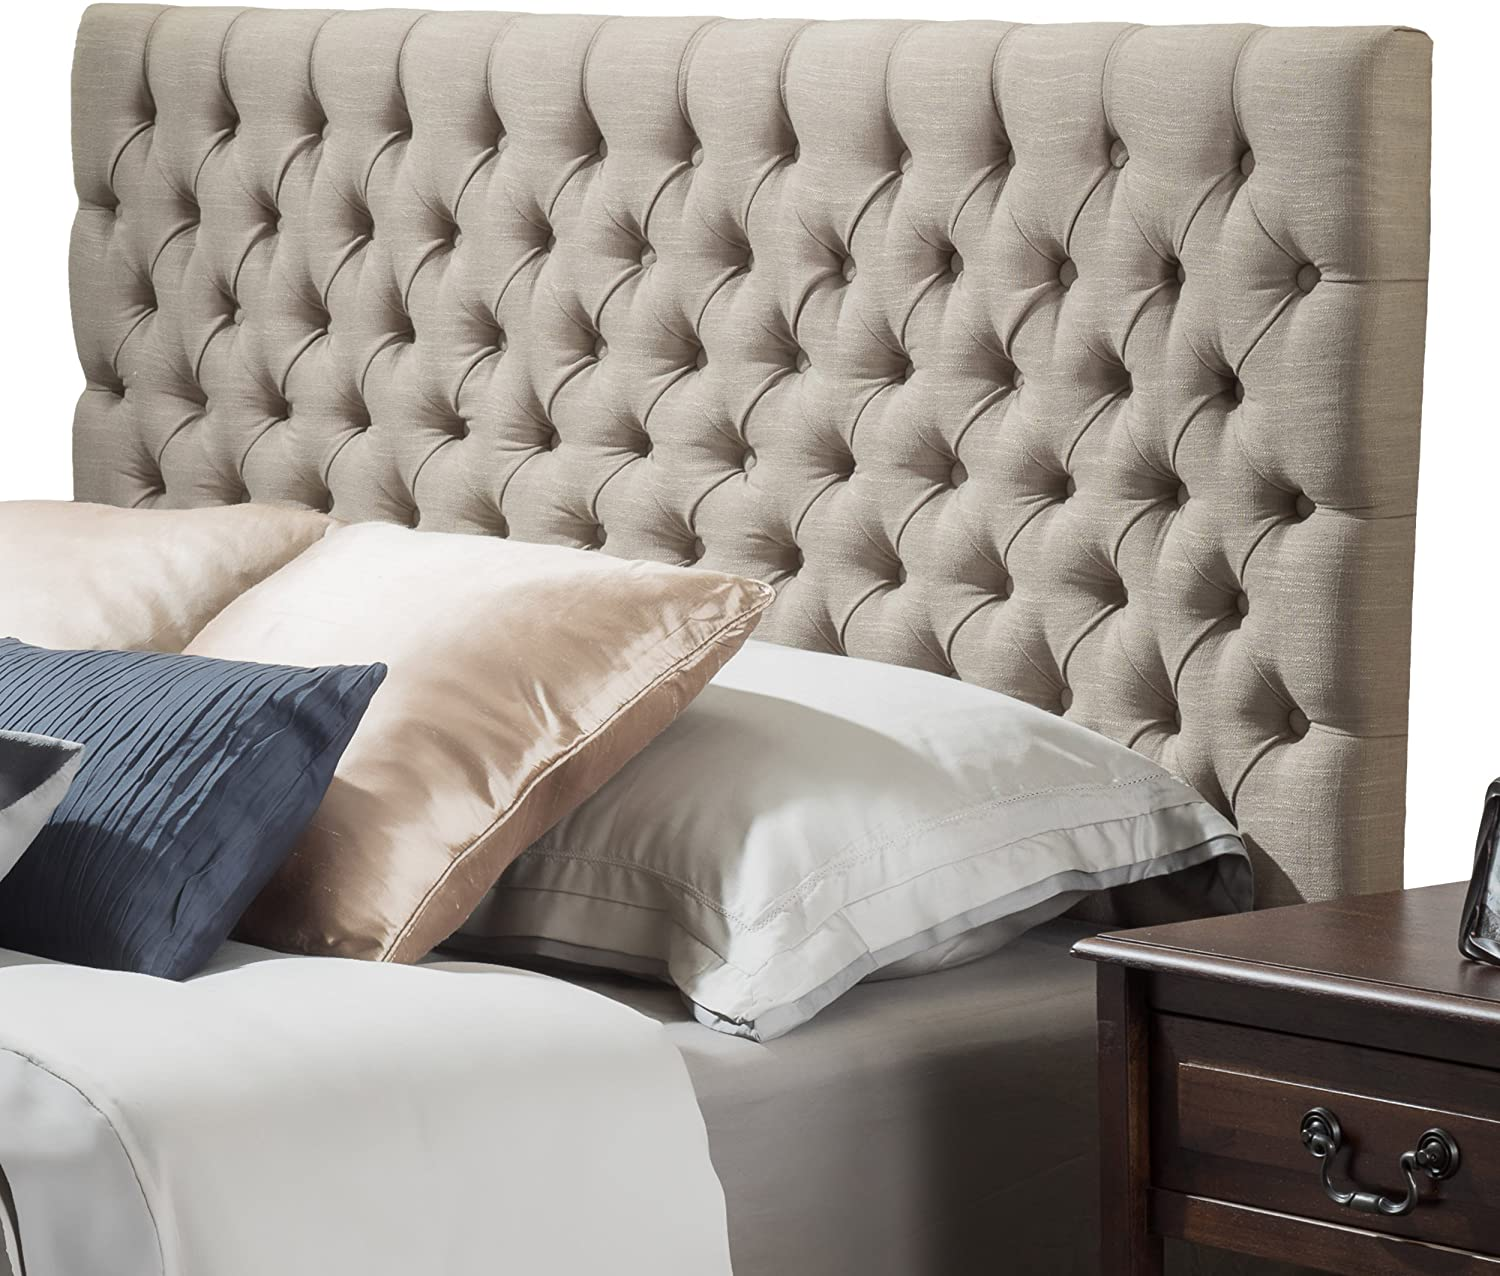 Best button tufted headboard for adjustable bed – Christopher Knight Home Jezebel Headboard